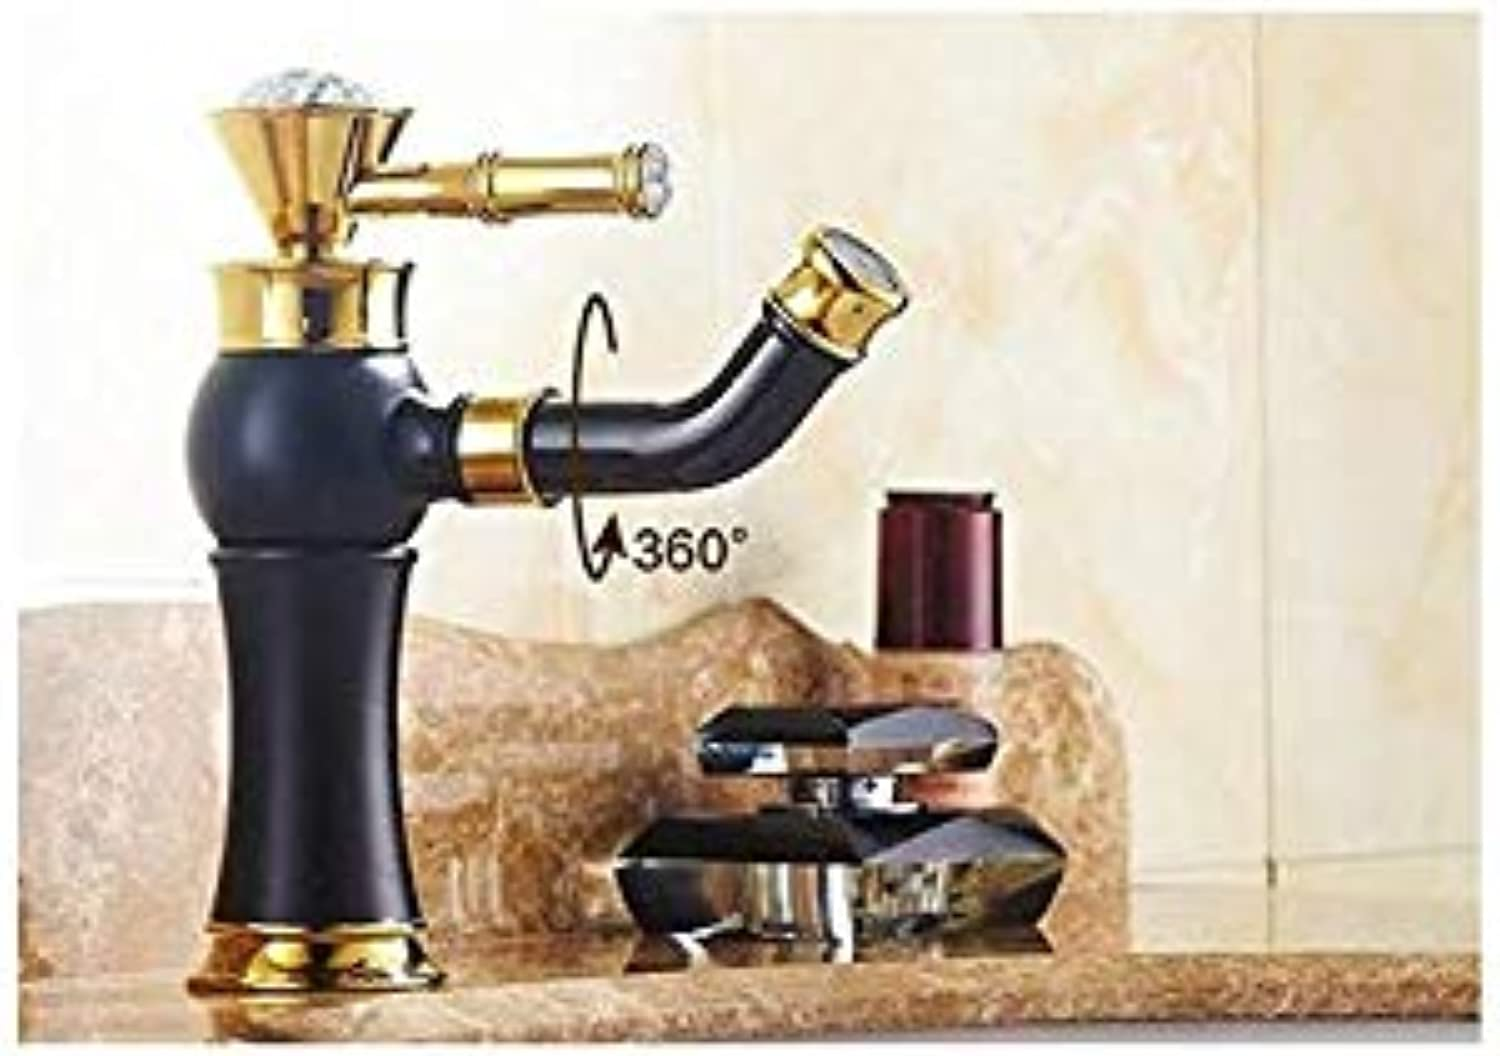 Basin Faucet Classic Beautiful Deck Mounted Single Handle Counter Top Basin Faucet gold Brass Hot and Cold Water Bathroom Mixer Taps,B